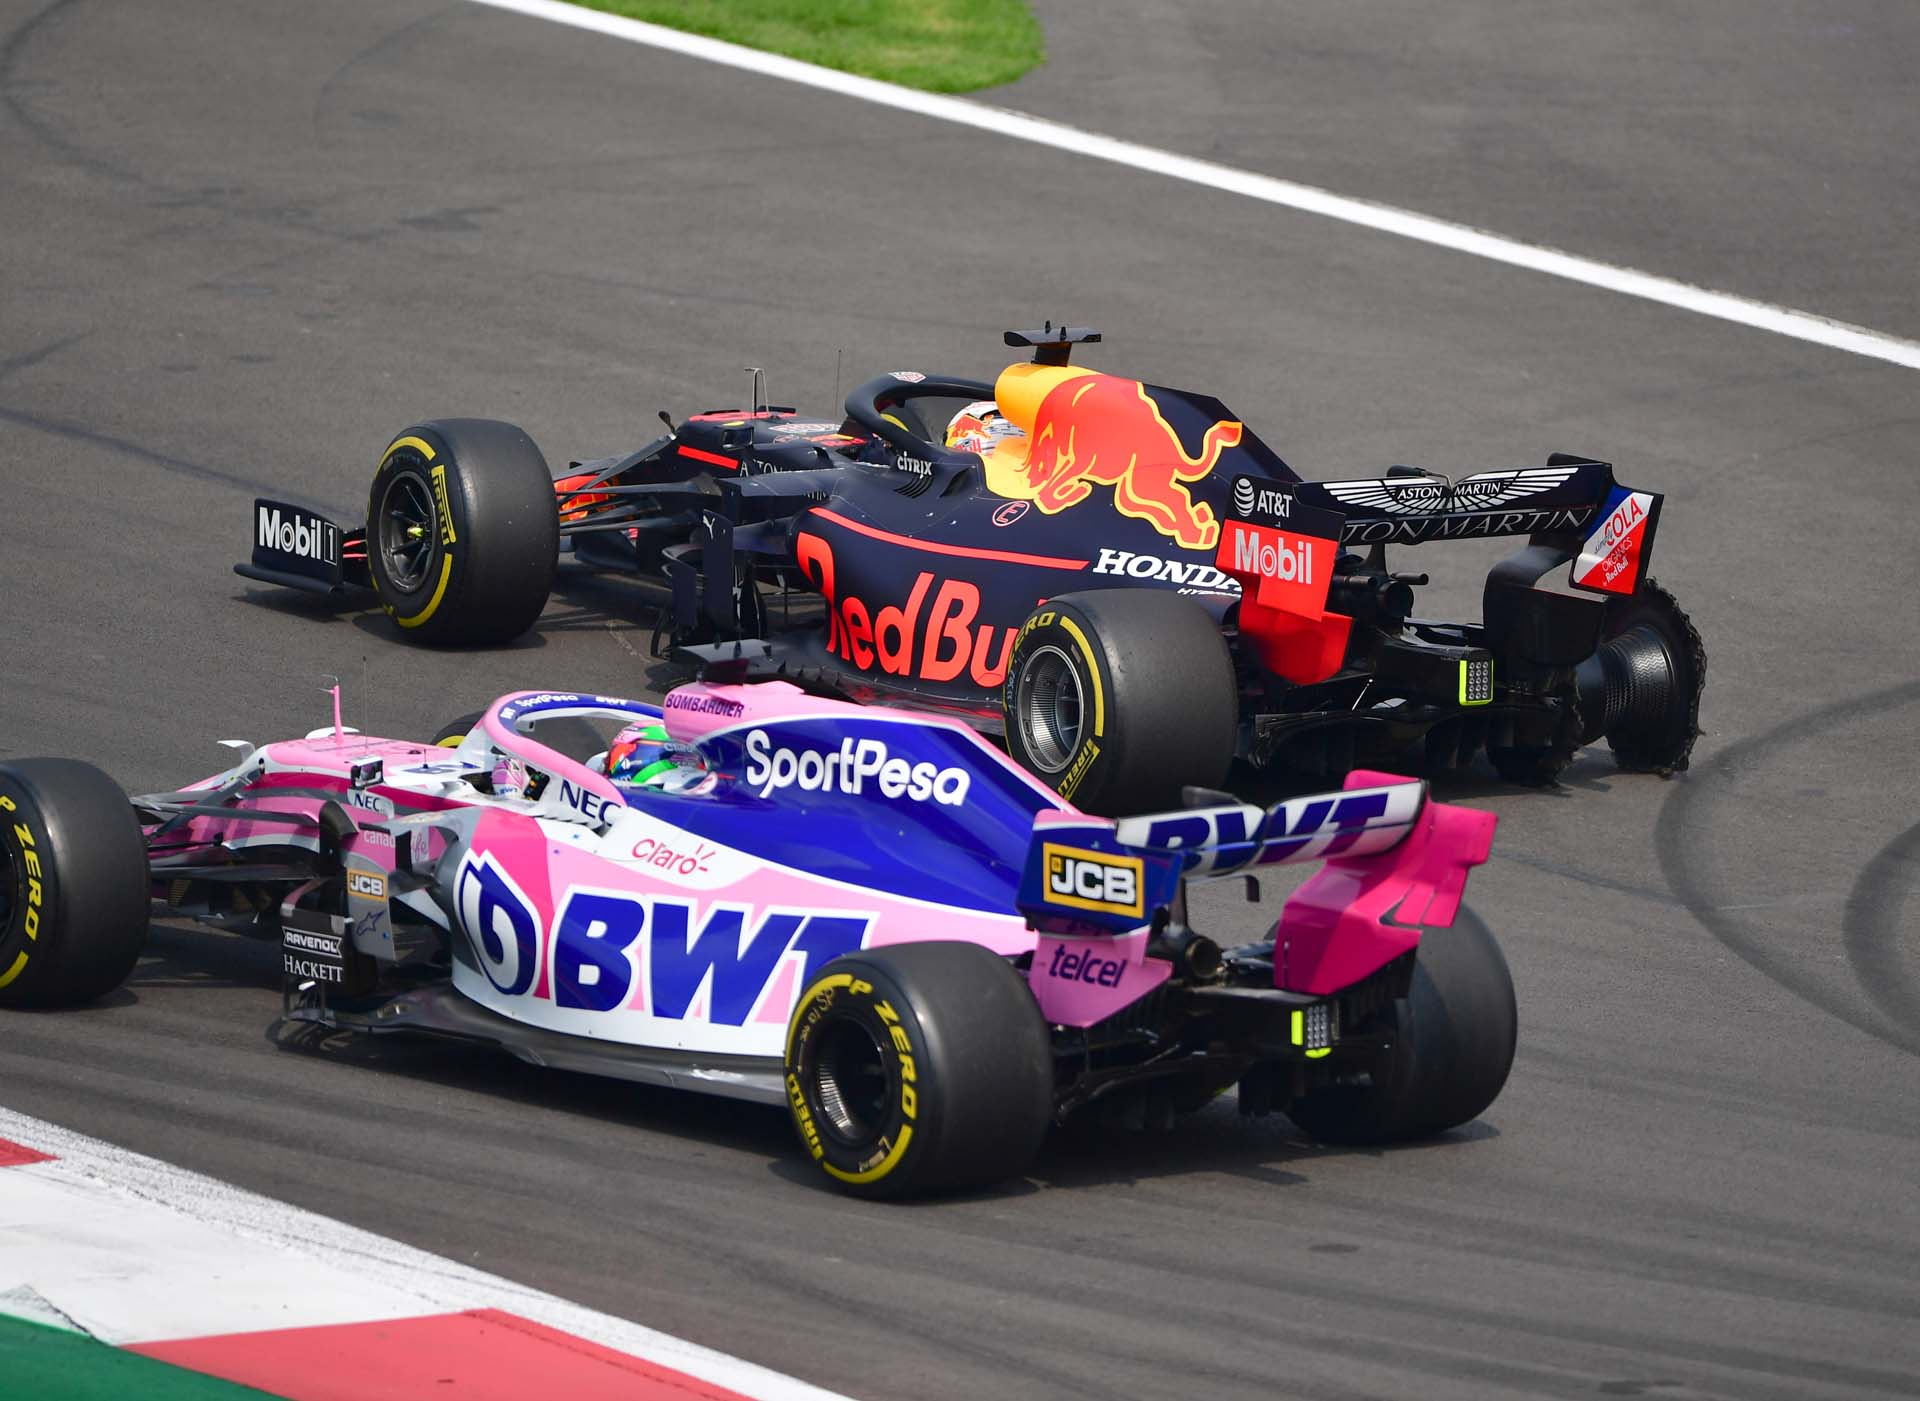 Sergio Perez, Racing Point RP19 and Max Verstappen, Red Bull Racing RB15